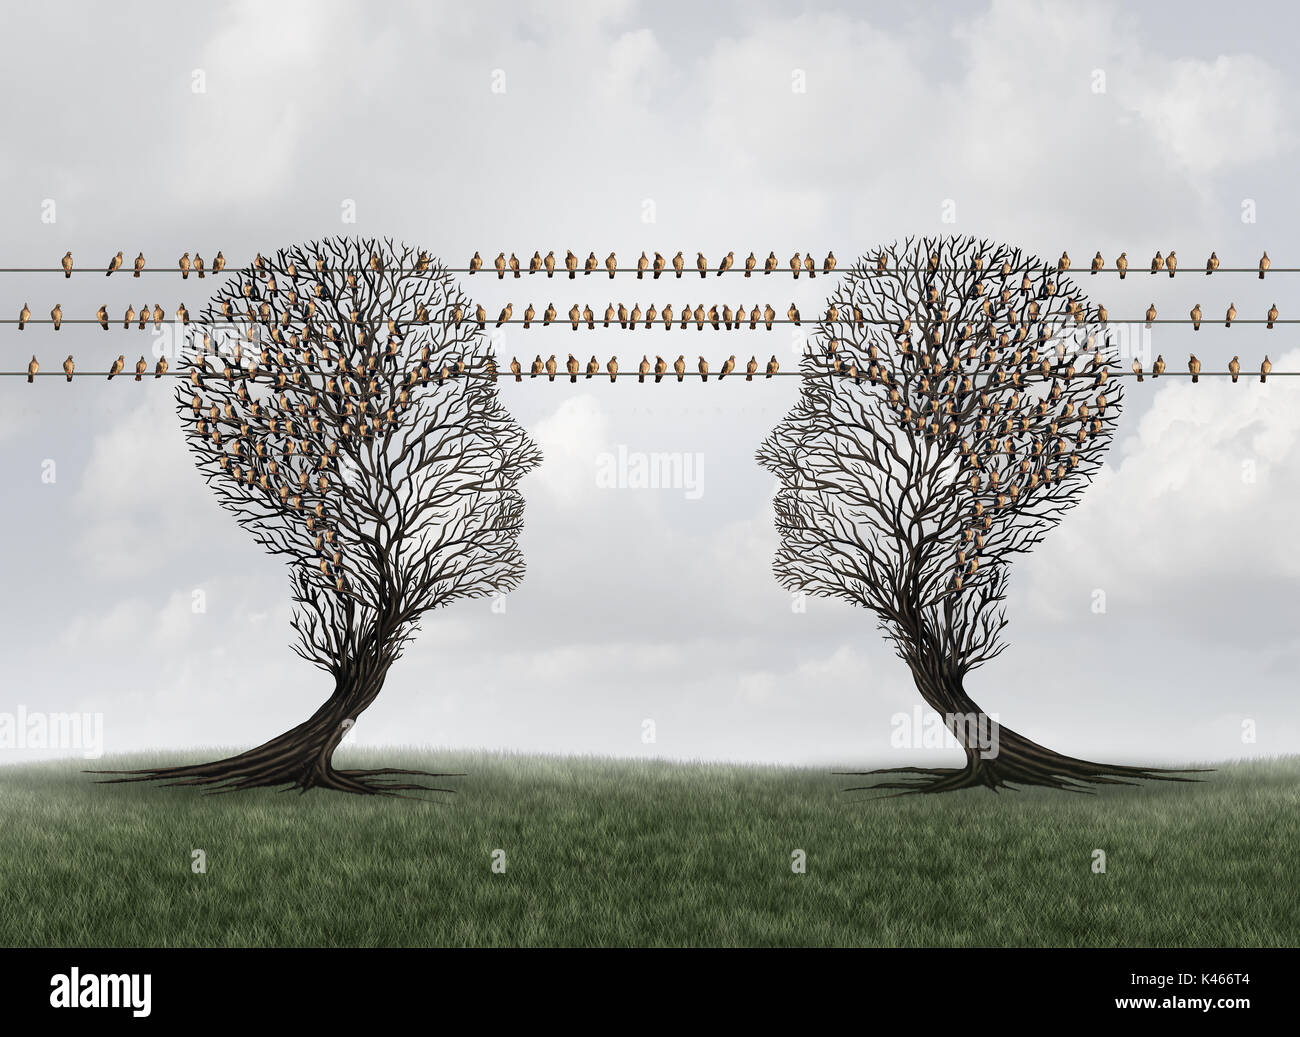 Connection communication network as trees shaped as human heads connected with birds on wires as messenger pigeons as internet data. - Stock Image